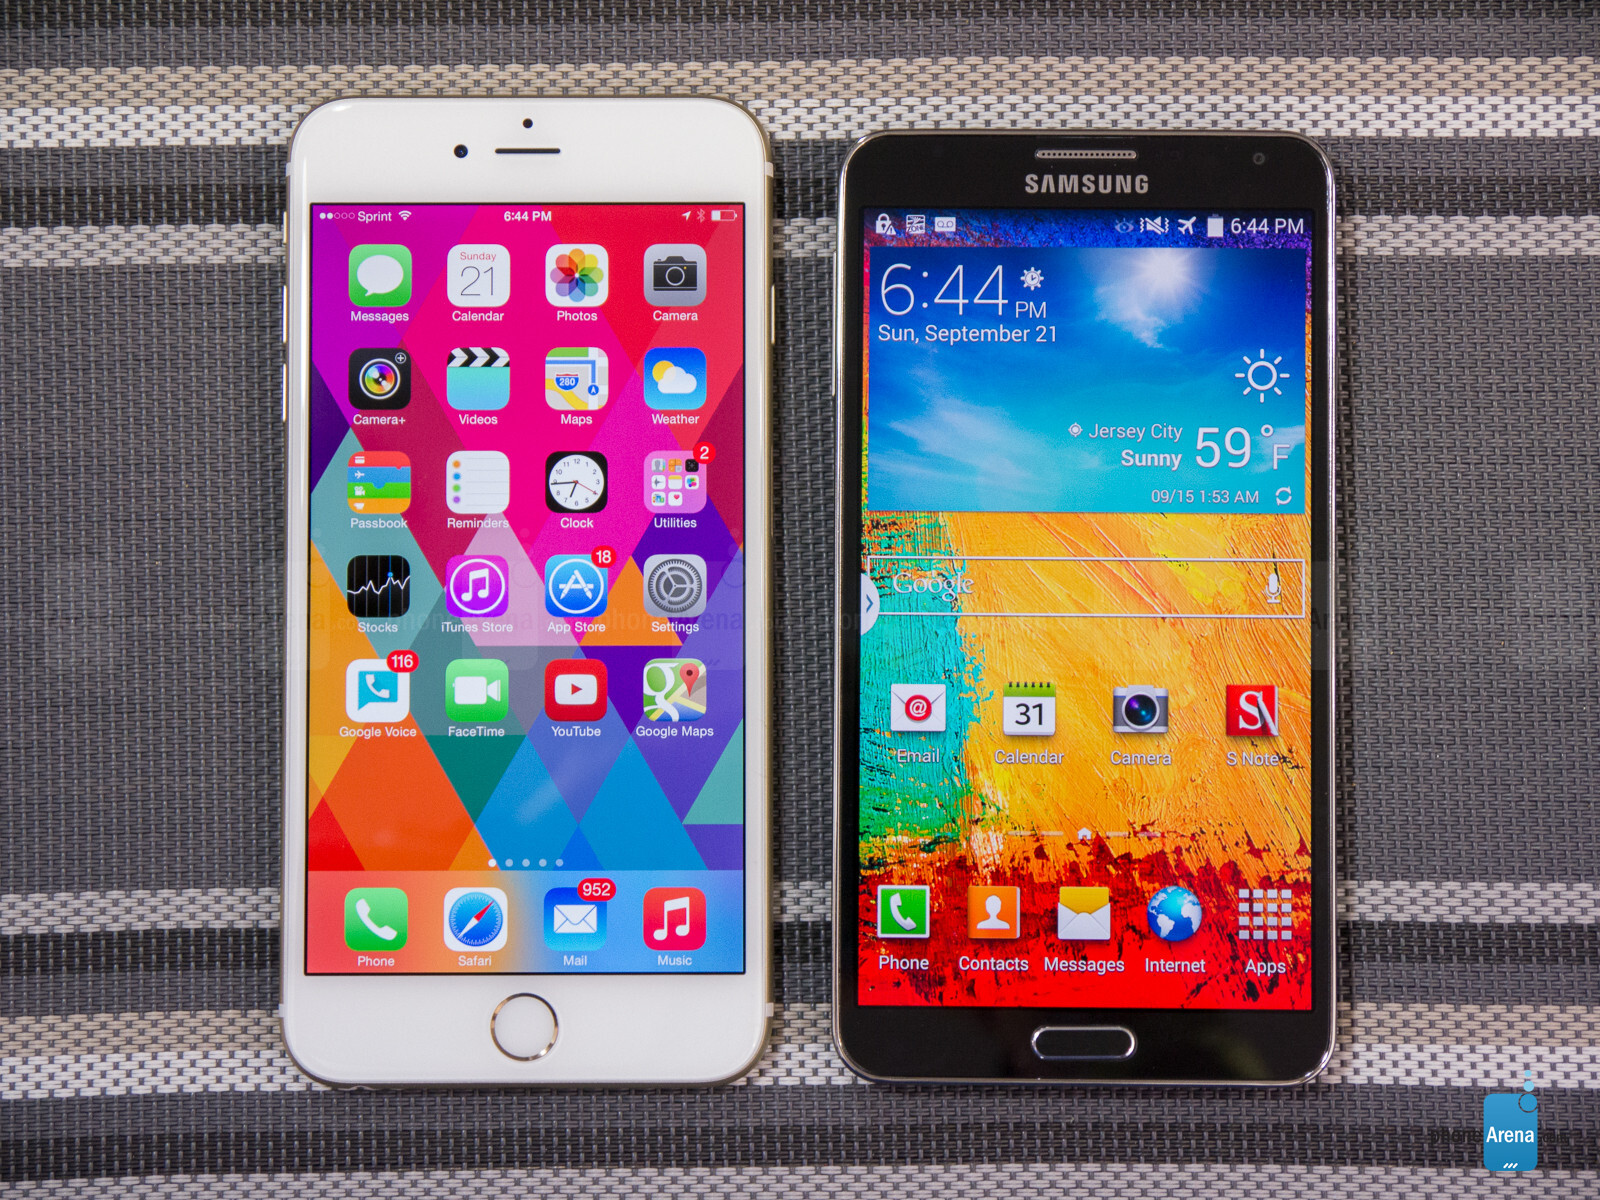 Samsung note 3 vs iphone 6 plus size comparison